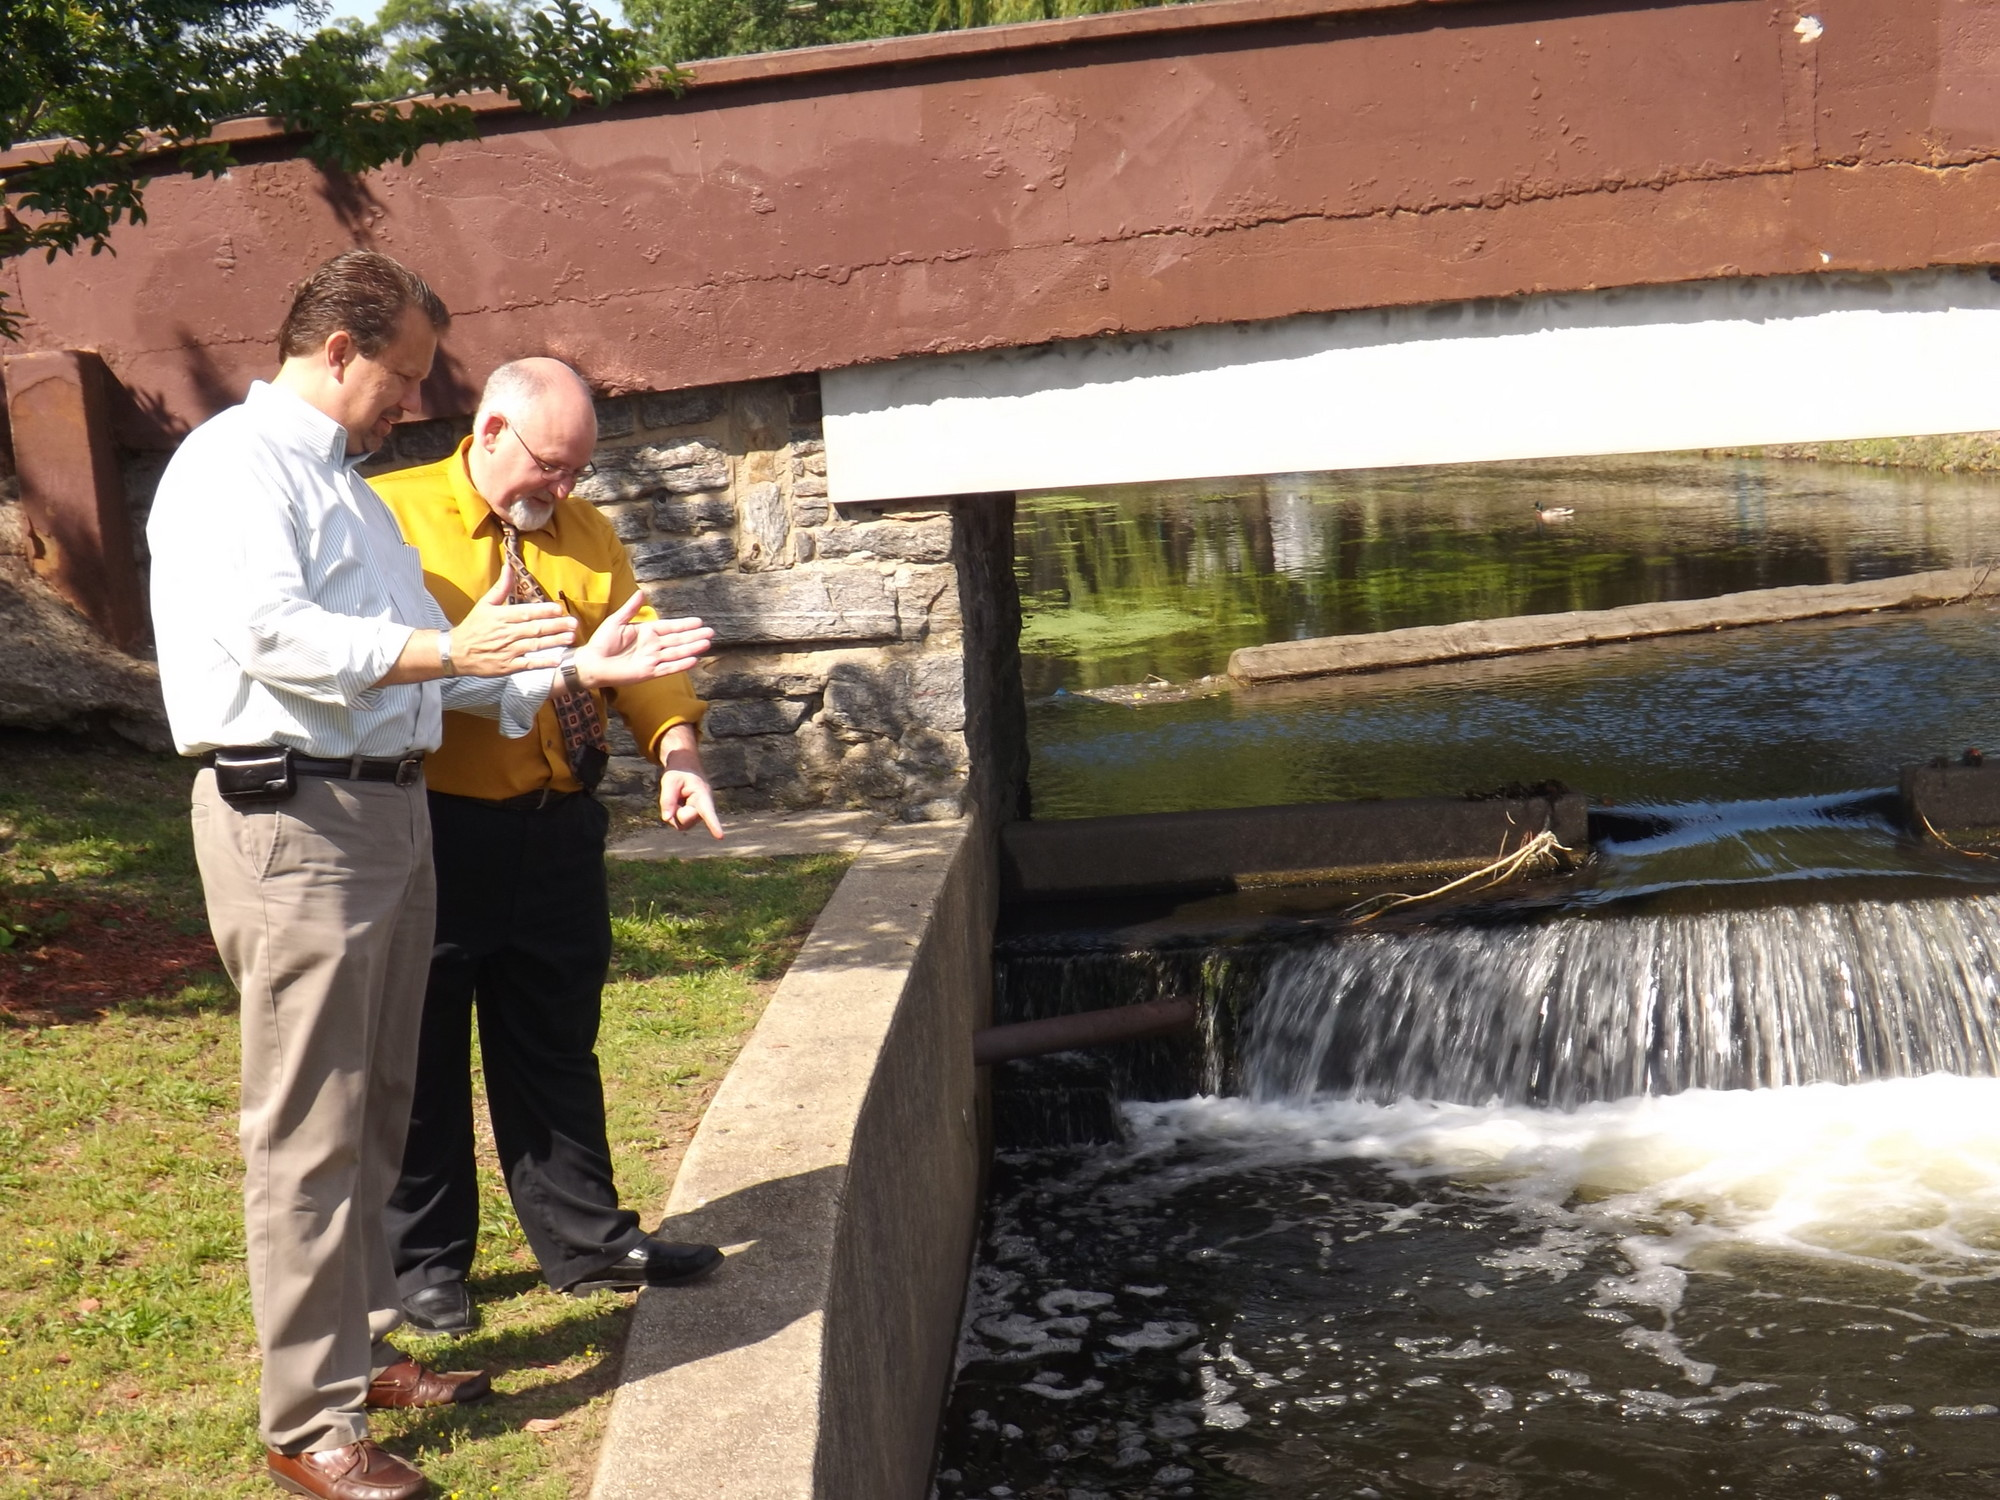 Mayor Ed Fare, left, and Deputy Village Clerk Rich DeAngelis checked out the carp at the lake in Hendrickson Park. The village will host a free family fishing weekend on June 29 and 30.